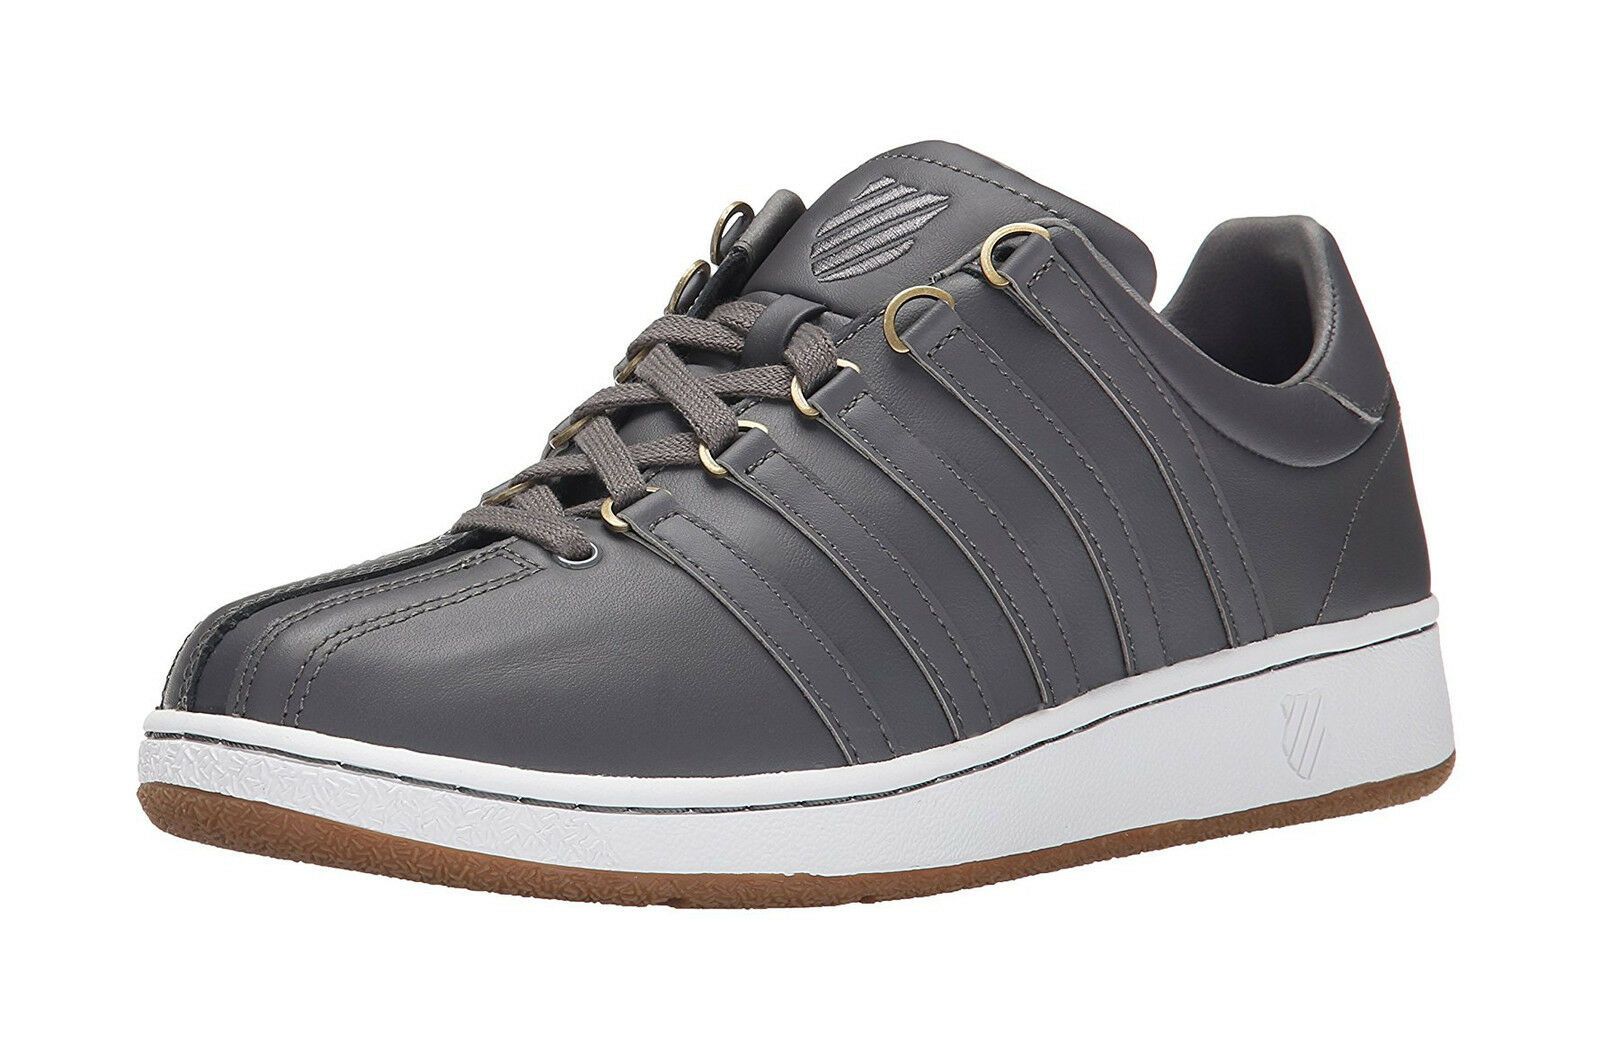 K-Swiss Shoes Classic VN Uomo  03343050 - Charcoal/Gum